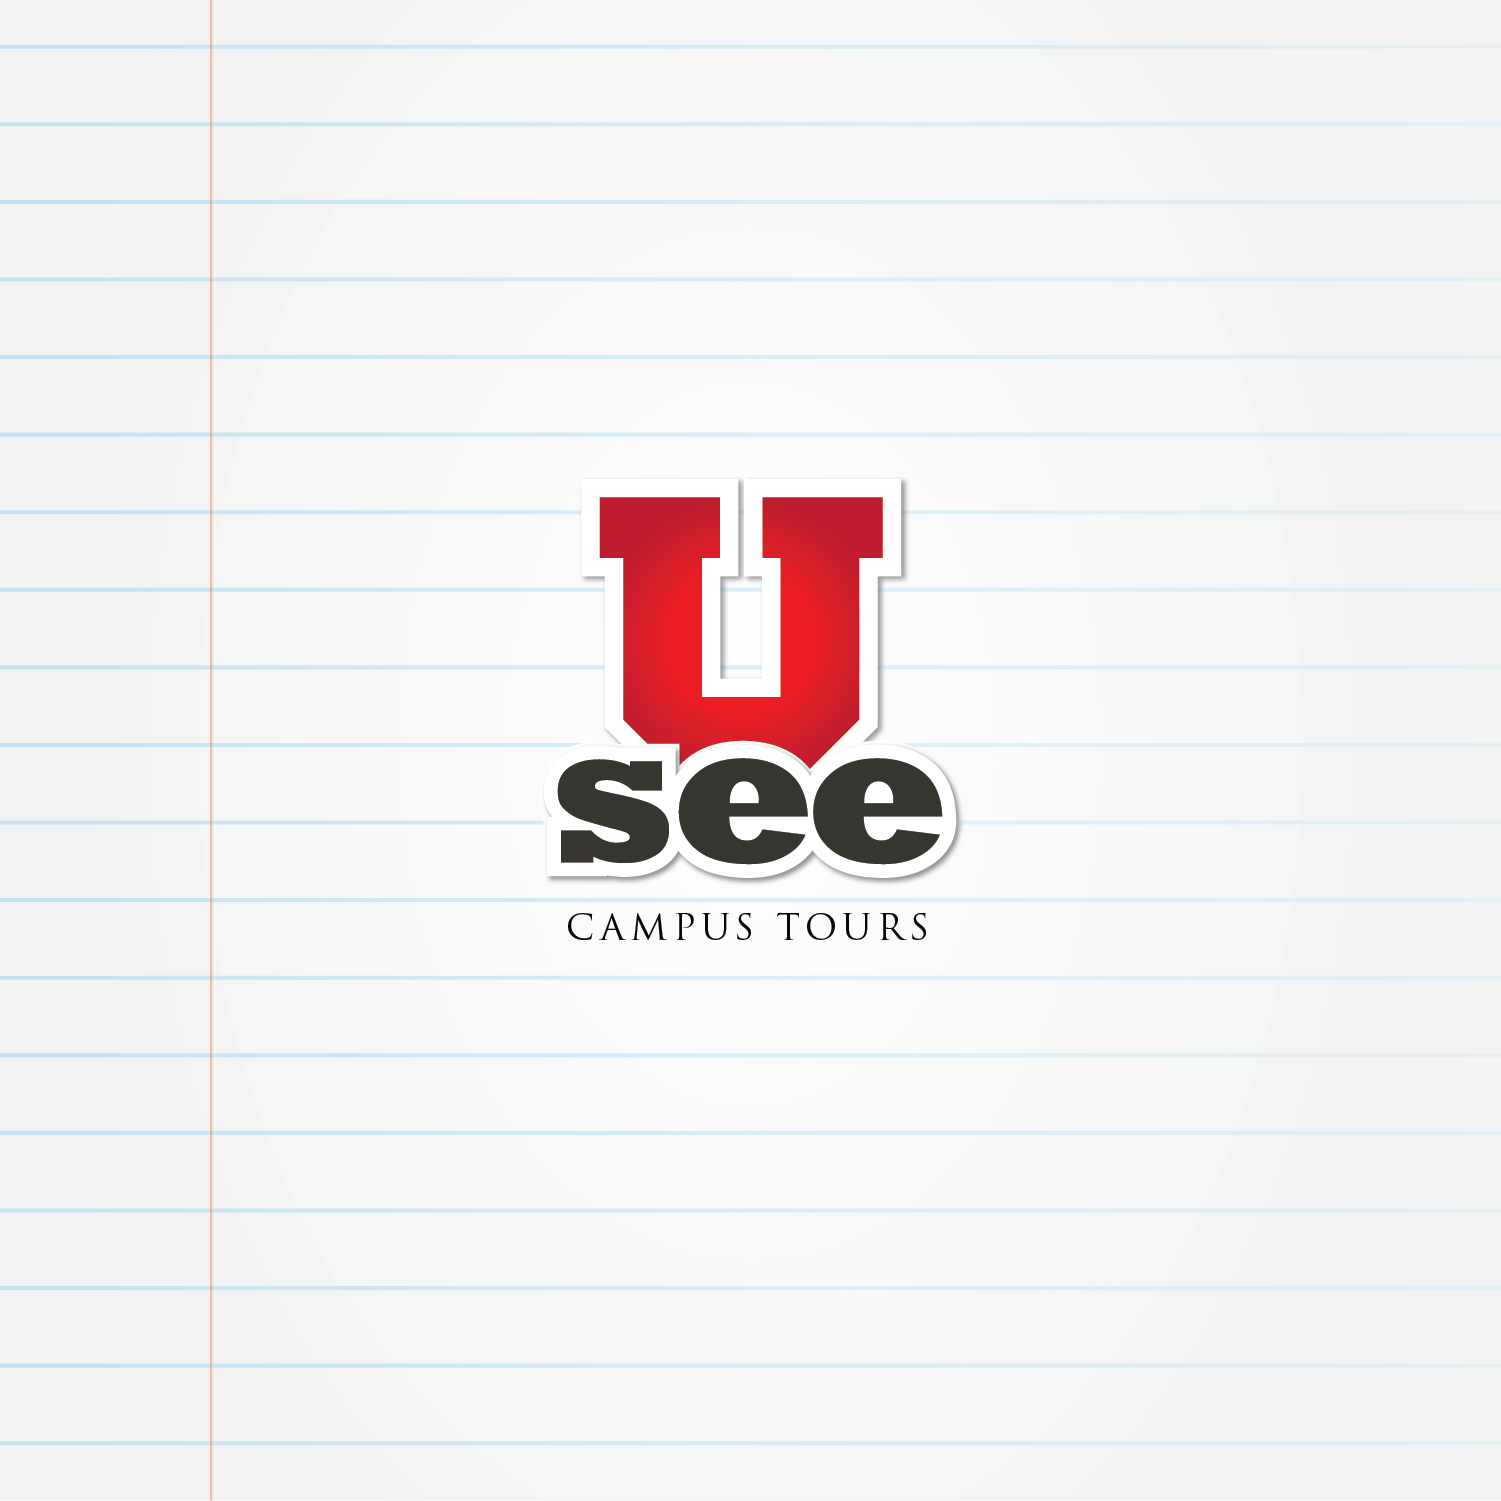 Usee Campus Tours